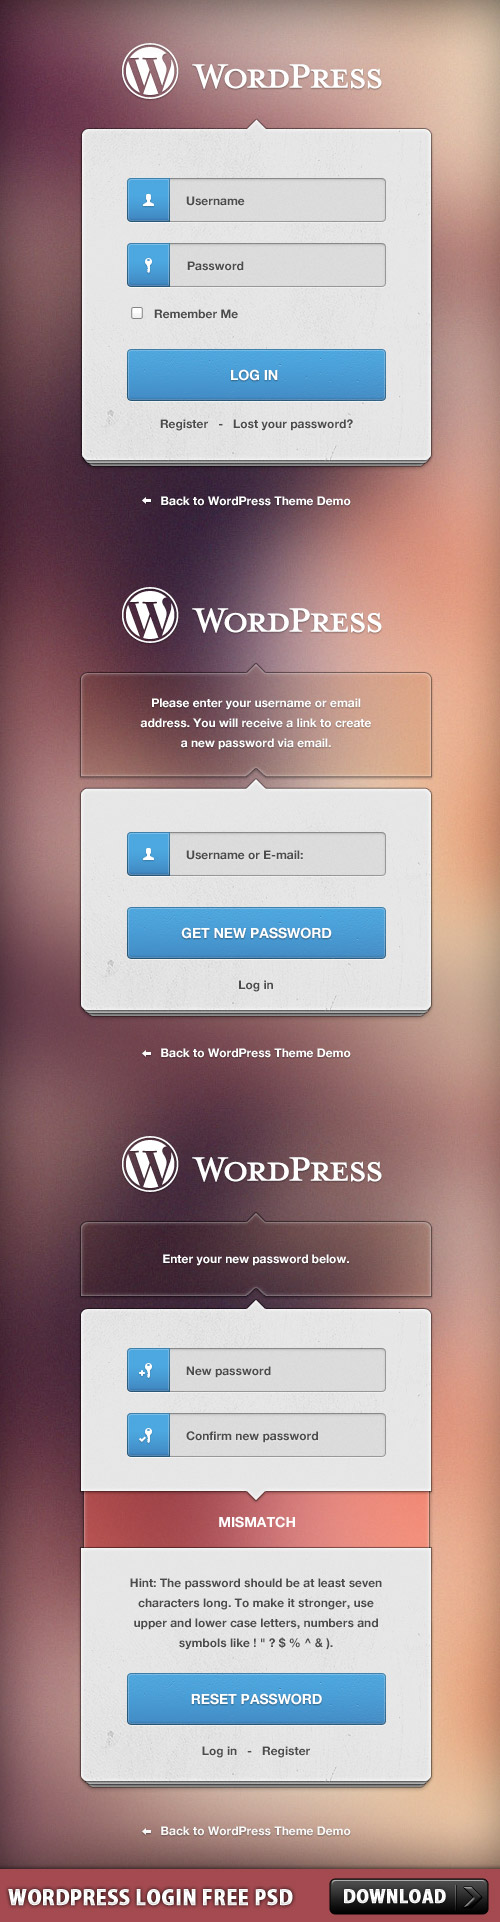 WordPress Login Free PSD Download - Download PSD